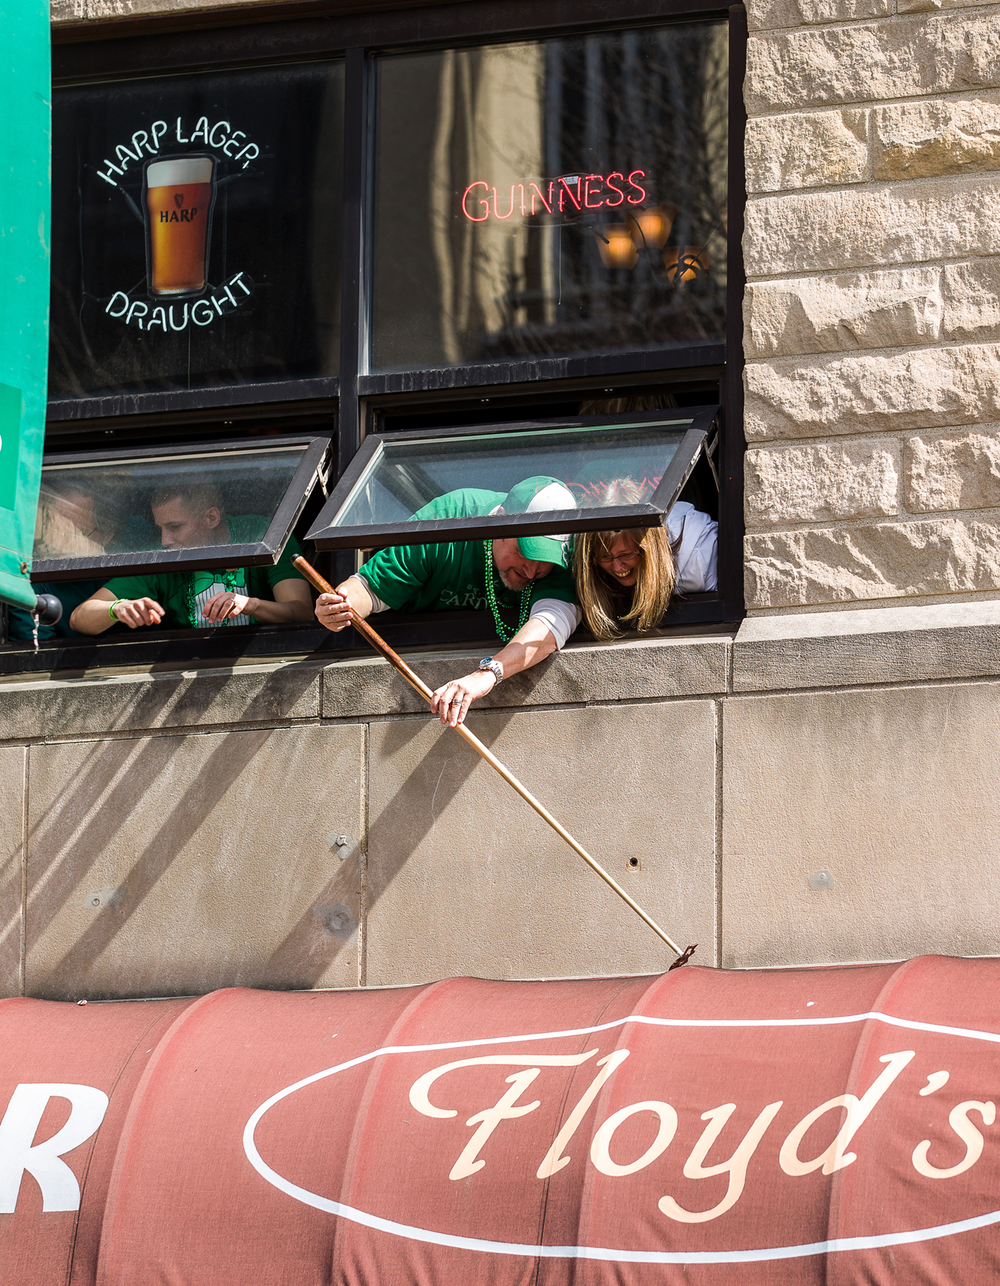 A pool bridge stick is used to grab an item off the top of the awning from the second floor of Floyd's during the 2015 Saint Patrick's Day Parade, Saturday, March 14, 2015, in Springfield, Ill. Justin L. Fowler/The State Journal-Register